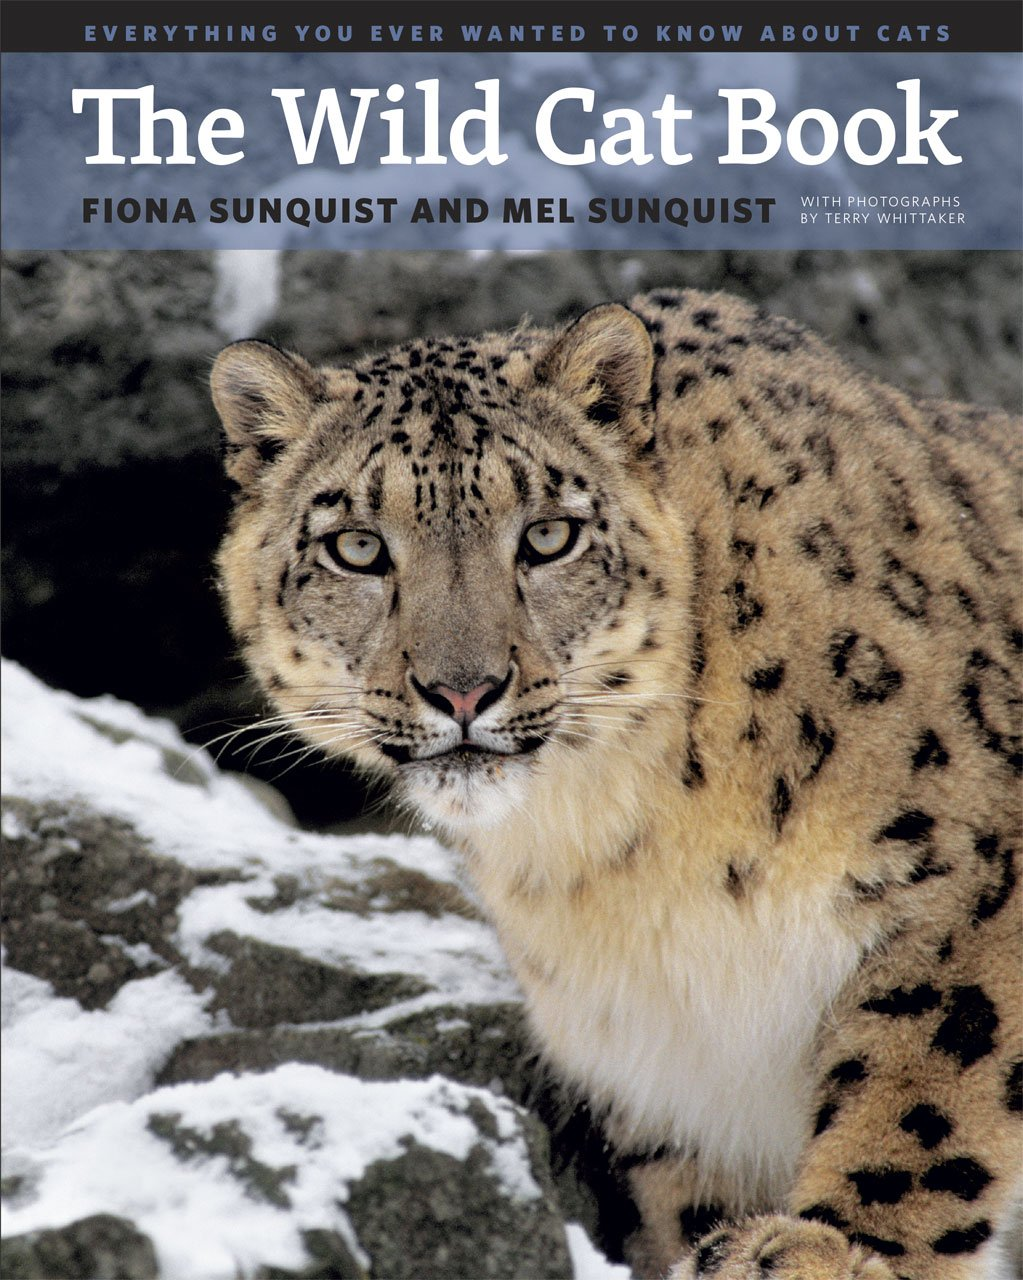 Everything You Ever Wanted to Know about Cats The Wild Cat Book